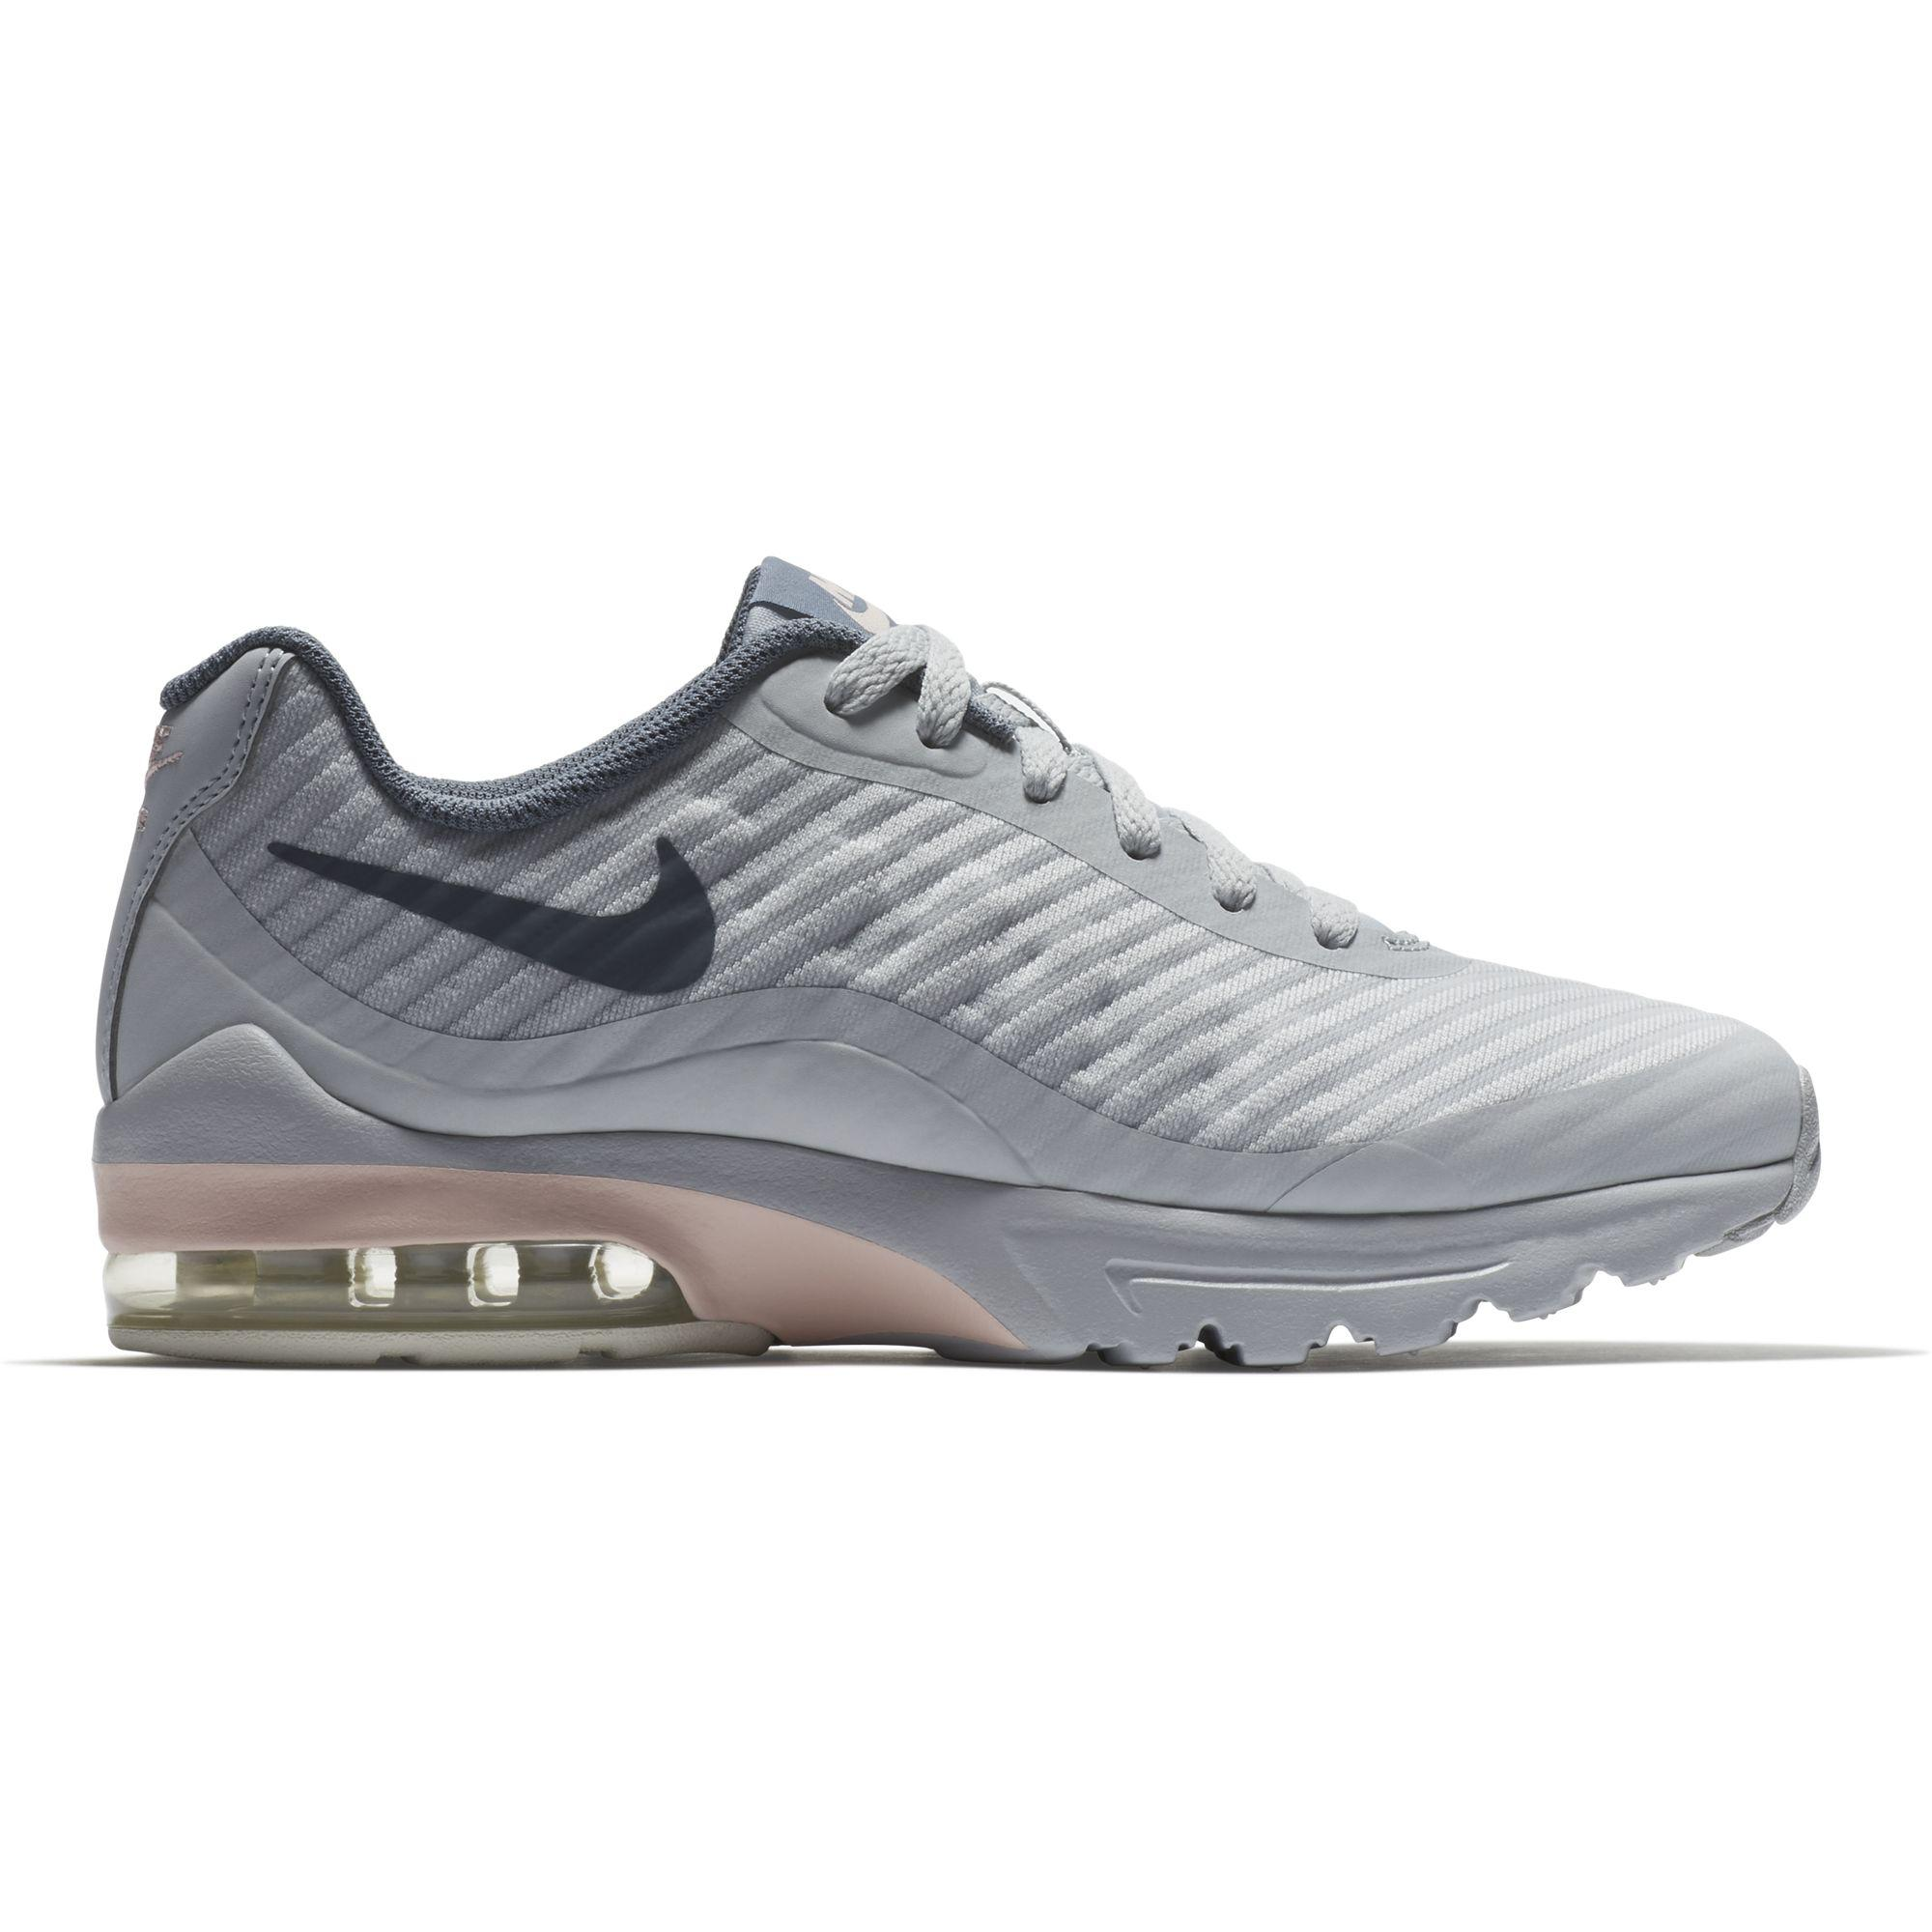 a993f85afed ... ireland nike womens air max invigor se running shoes pure platinum  7639e c381d